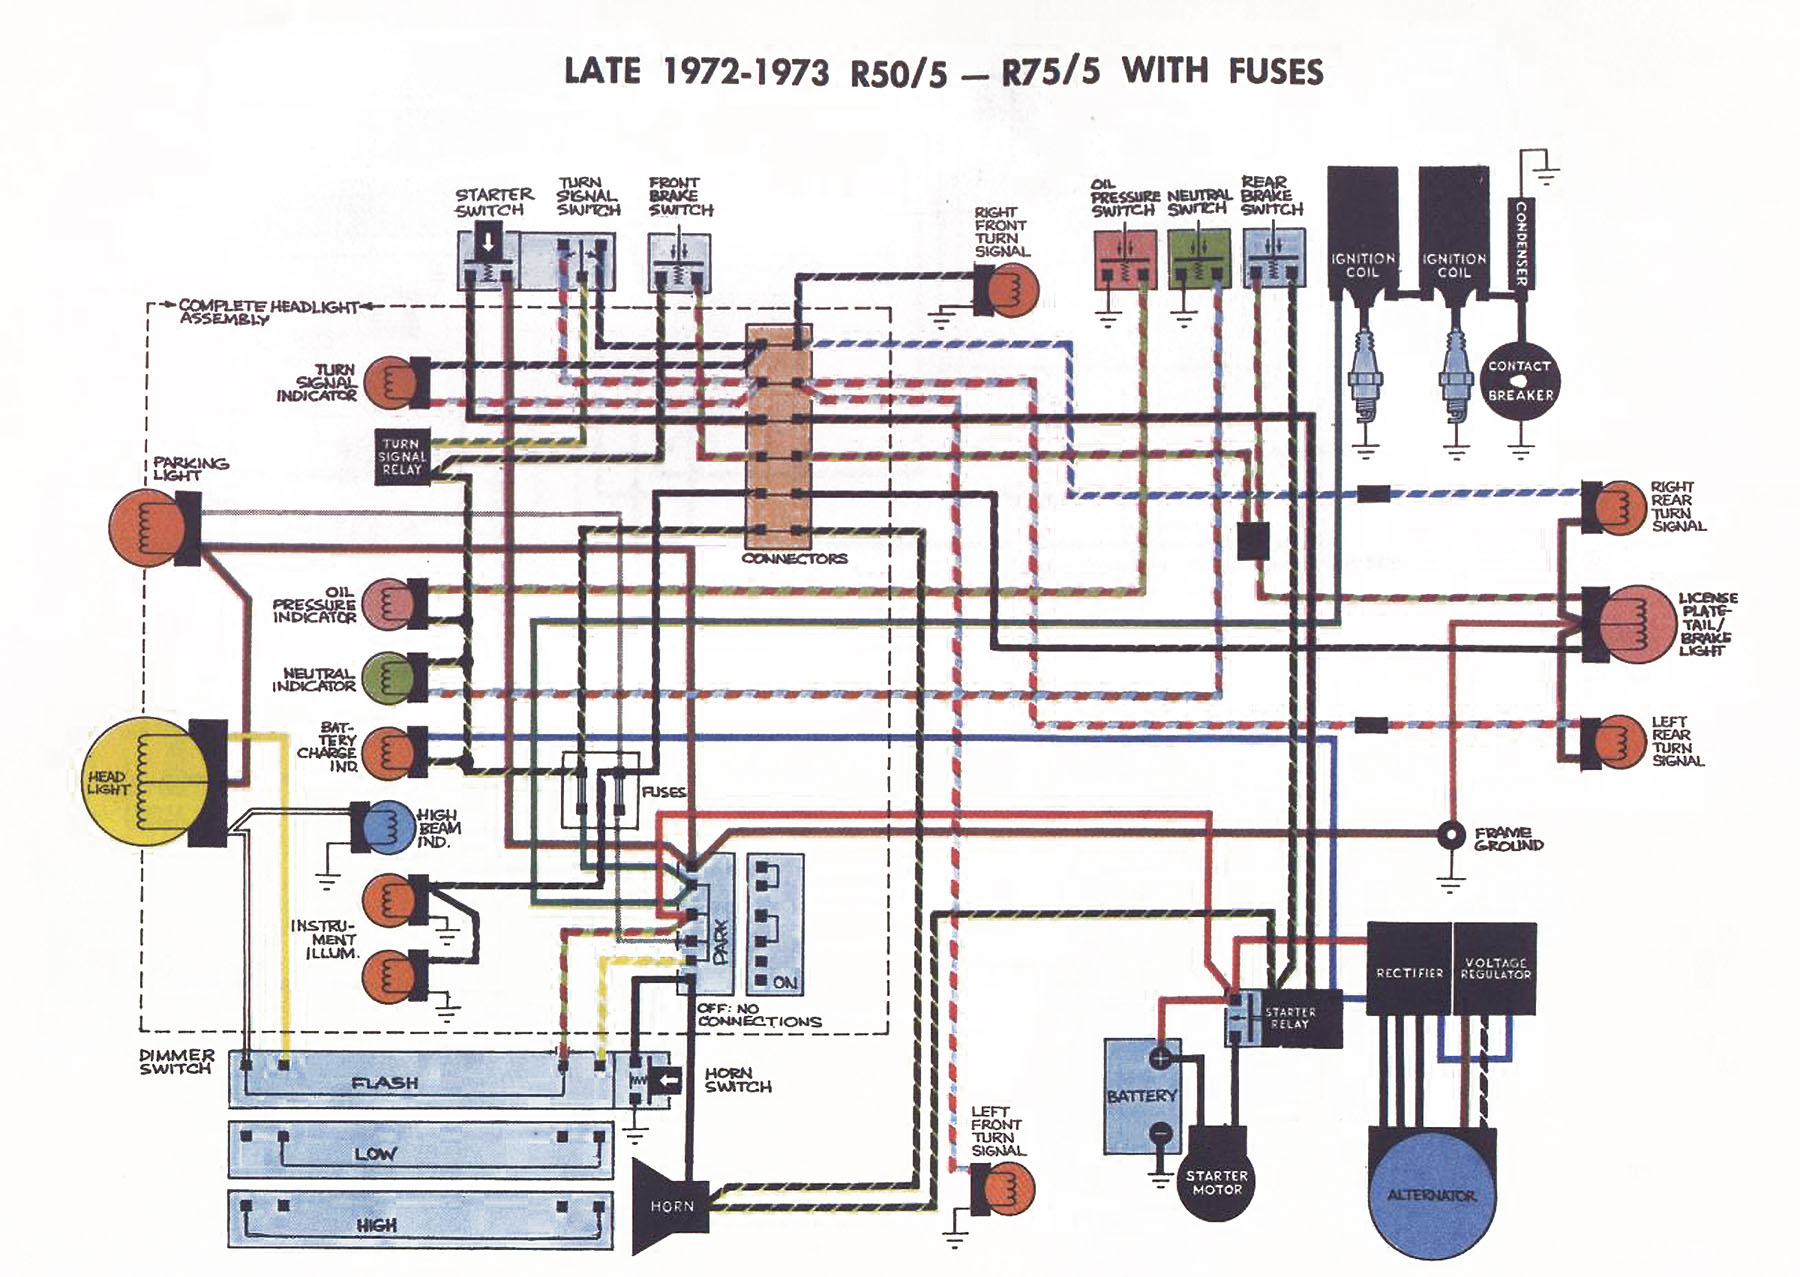 5_fused_schematic 5 united articles wiring diagrams bmw r75/5 wiring diagram at gsmx.co